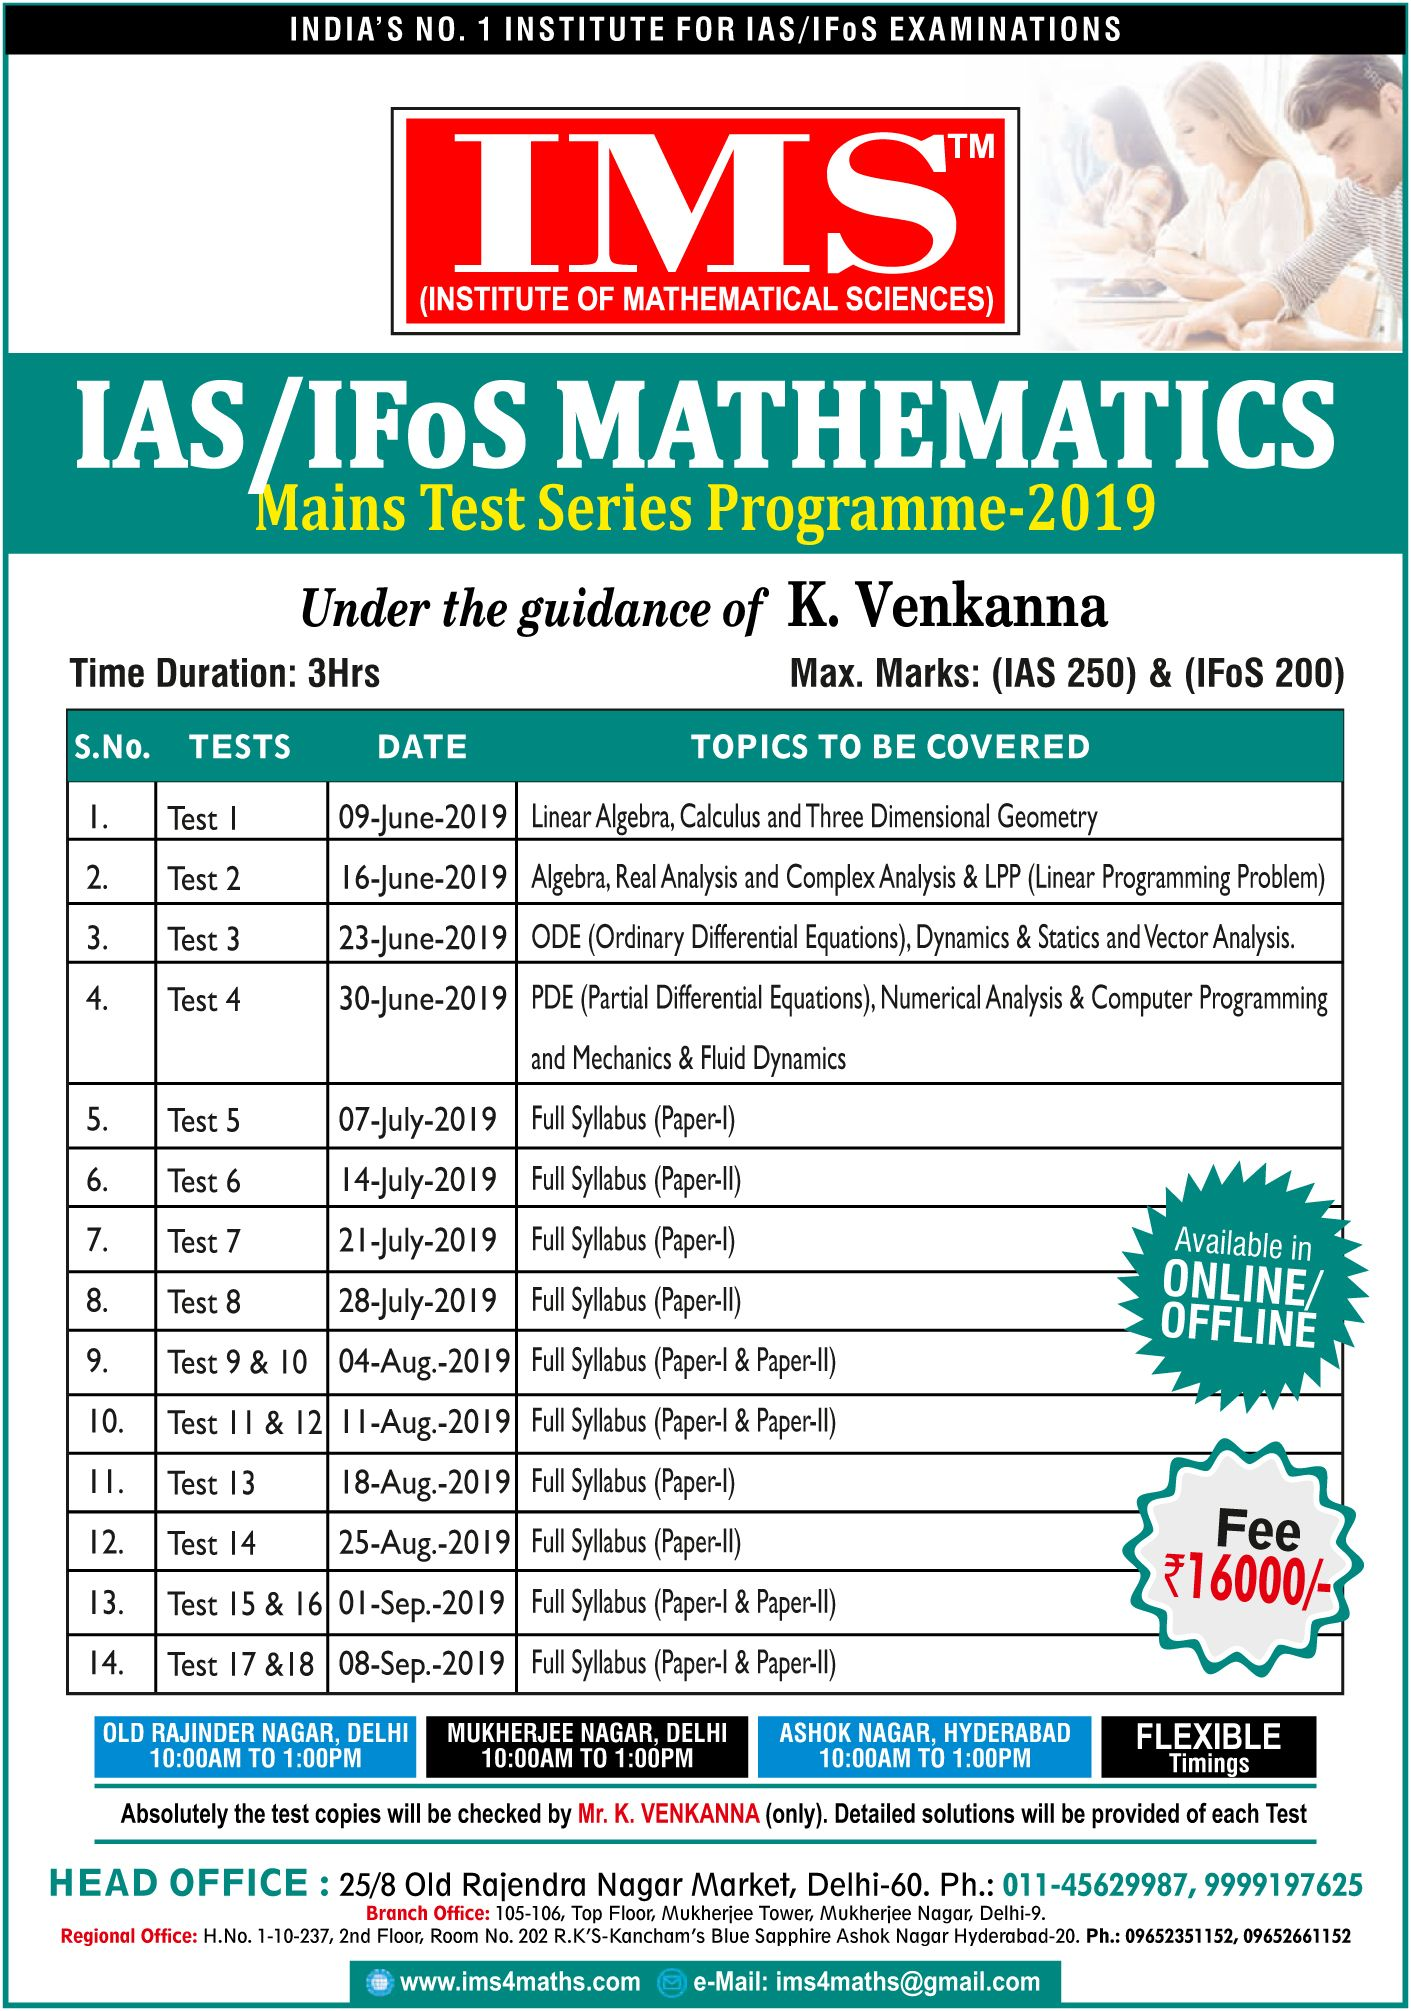 For Any Query Feel Free To Contact Visit Https Www Ims4maths Com Email Ims4maths Gmail Com Call 011 45629987 99991976 Mathematics Date Topics Coaching